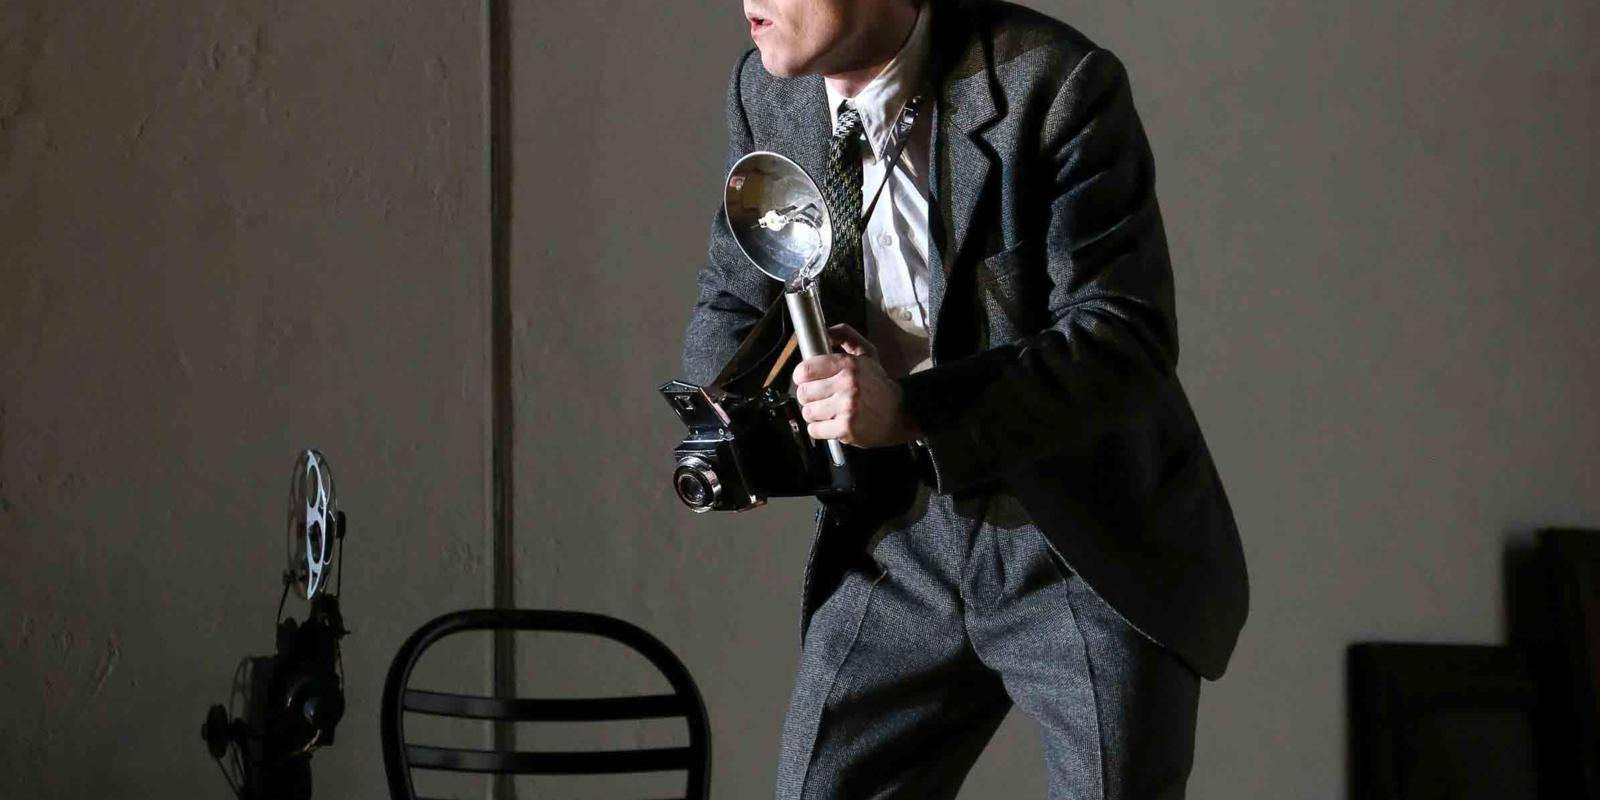 Rupert Charlesworth playing Emilio in ENO's 2017 production of Partenope